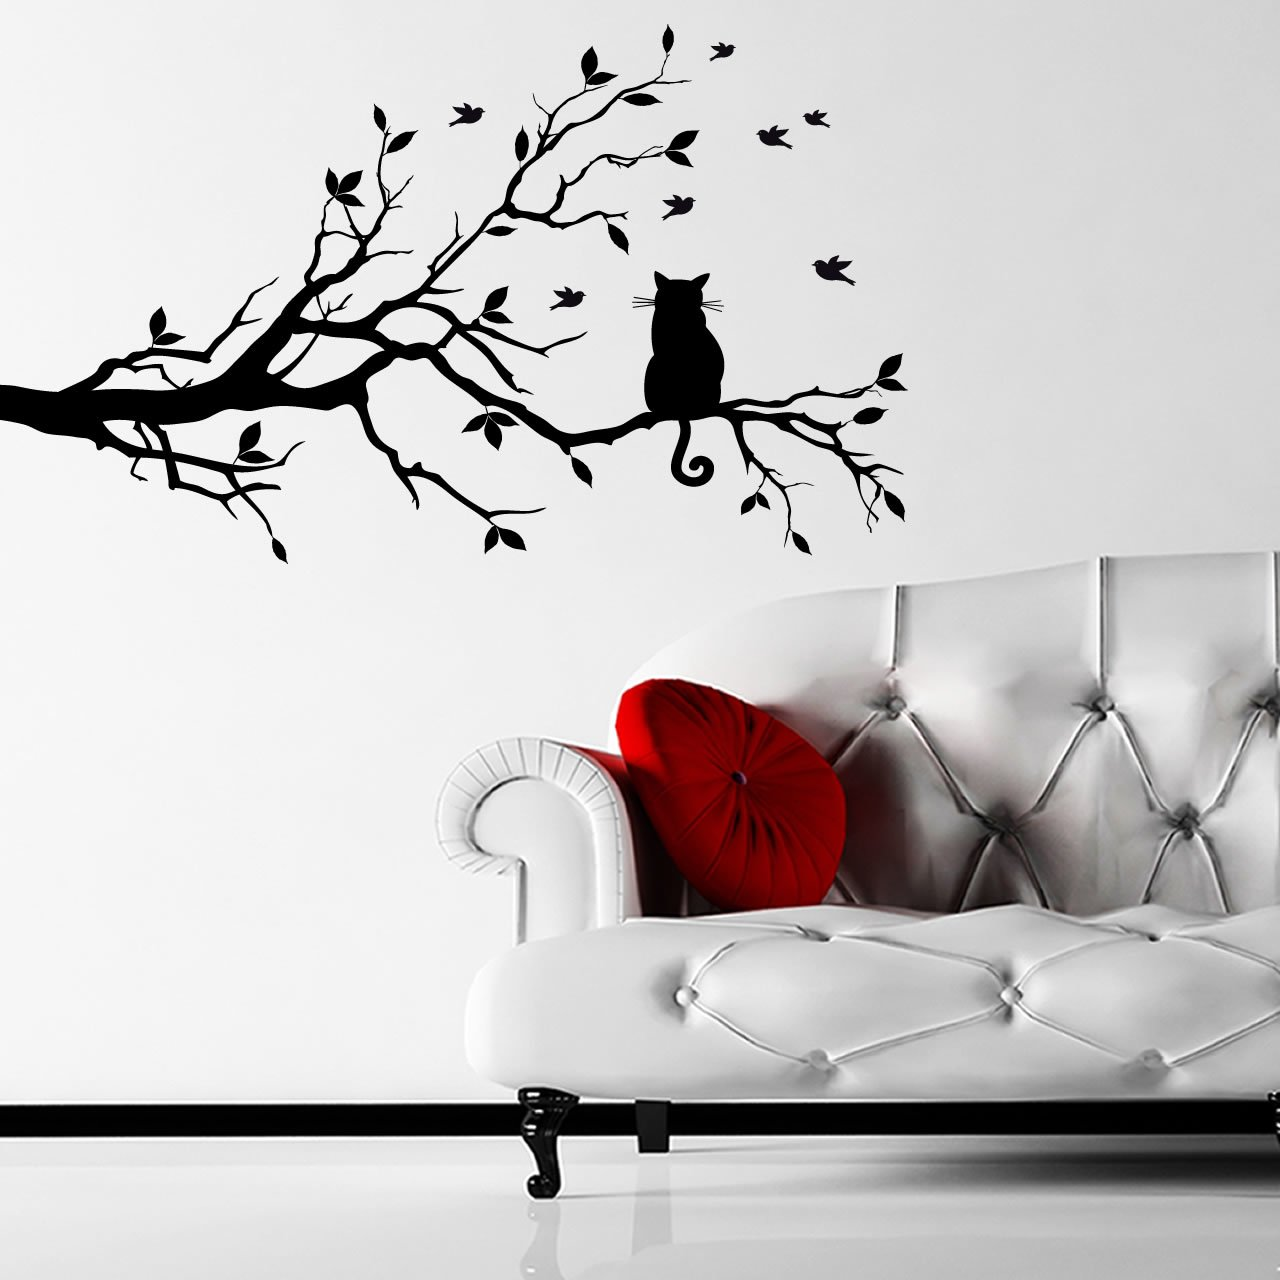 Cat on a branch animal wall sticker world of wall stickers cat on a branch animal wall sticker decal a amipublicfo Image collections